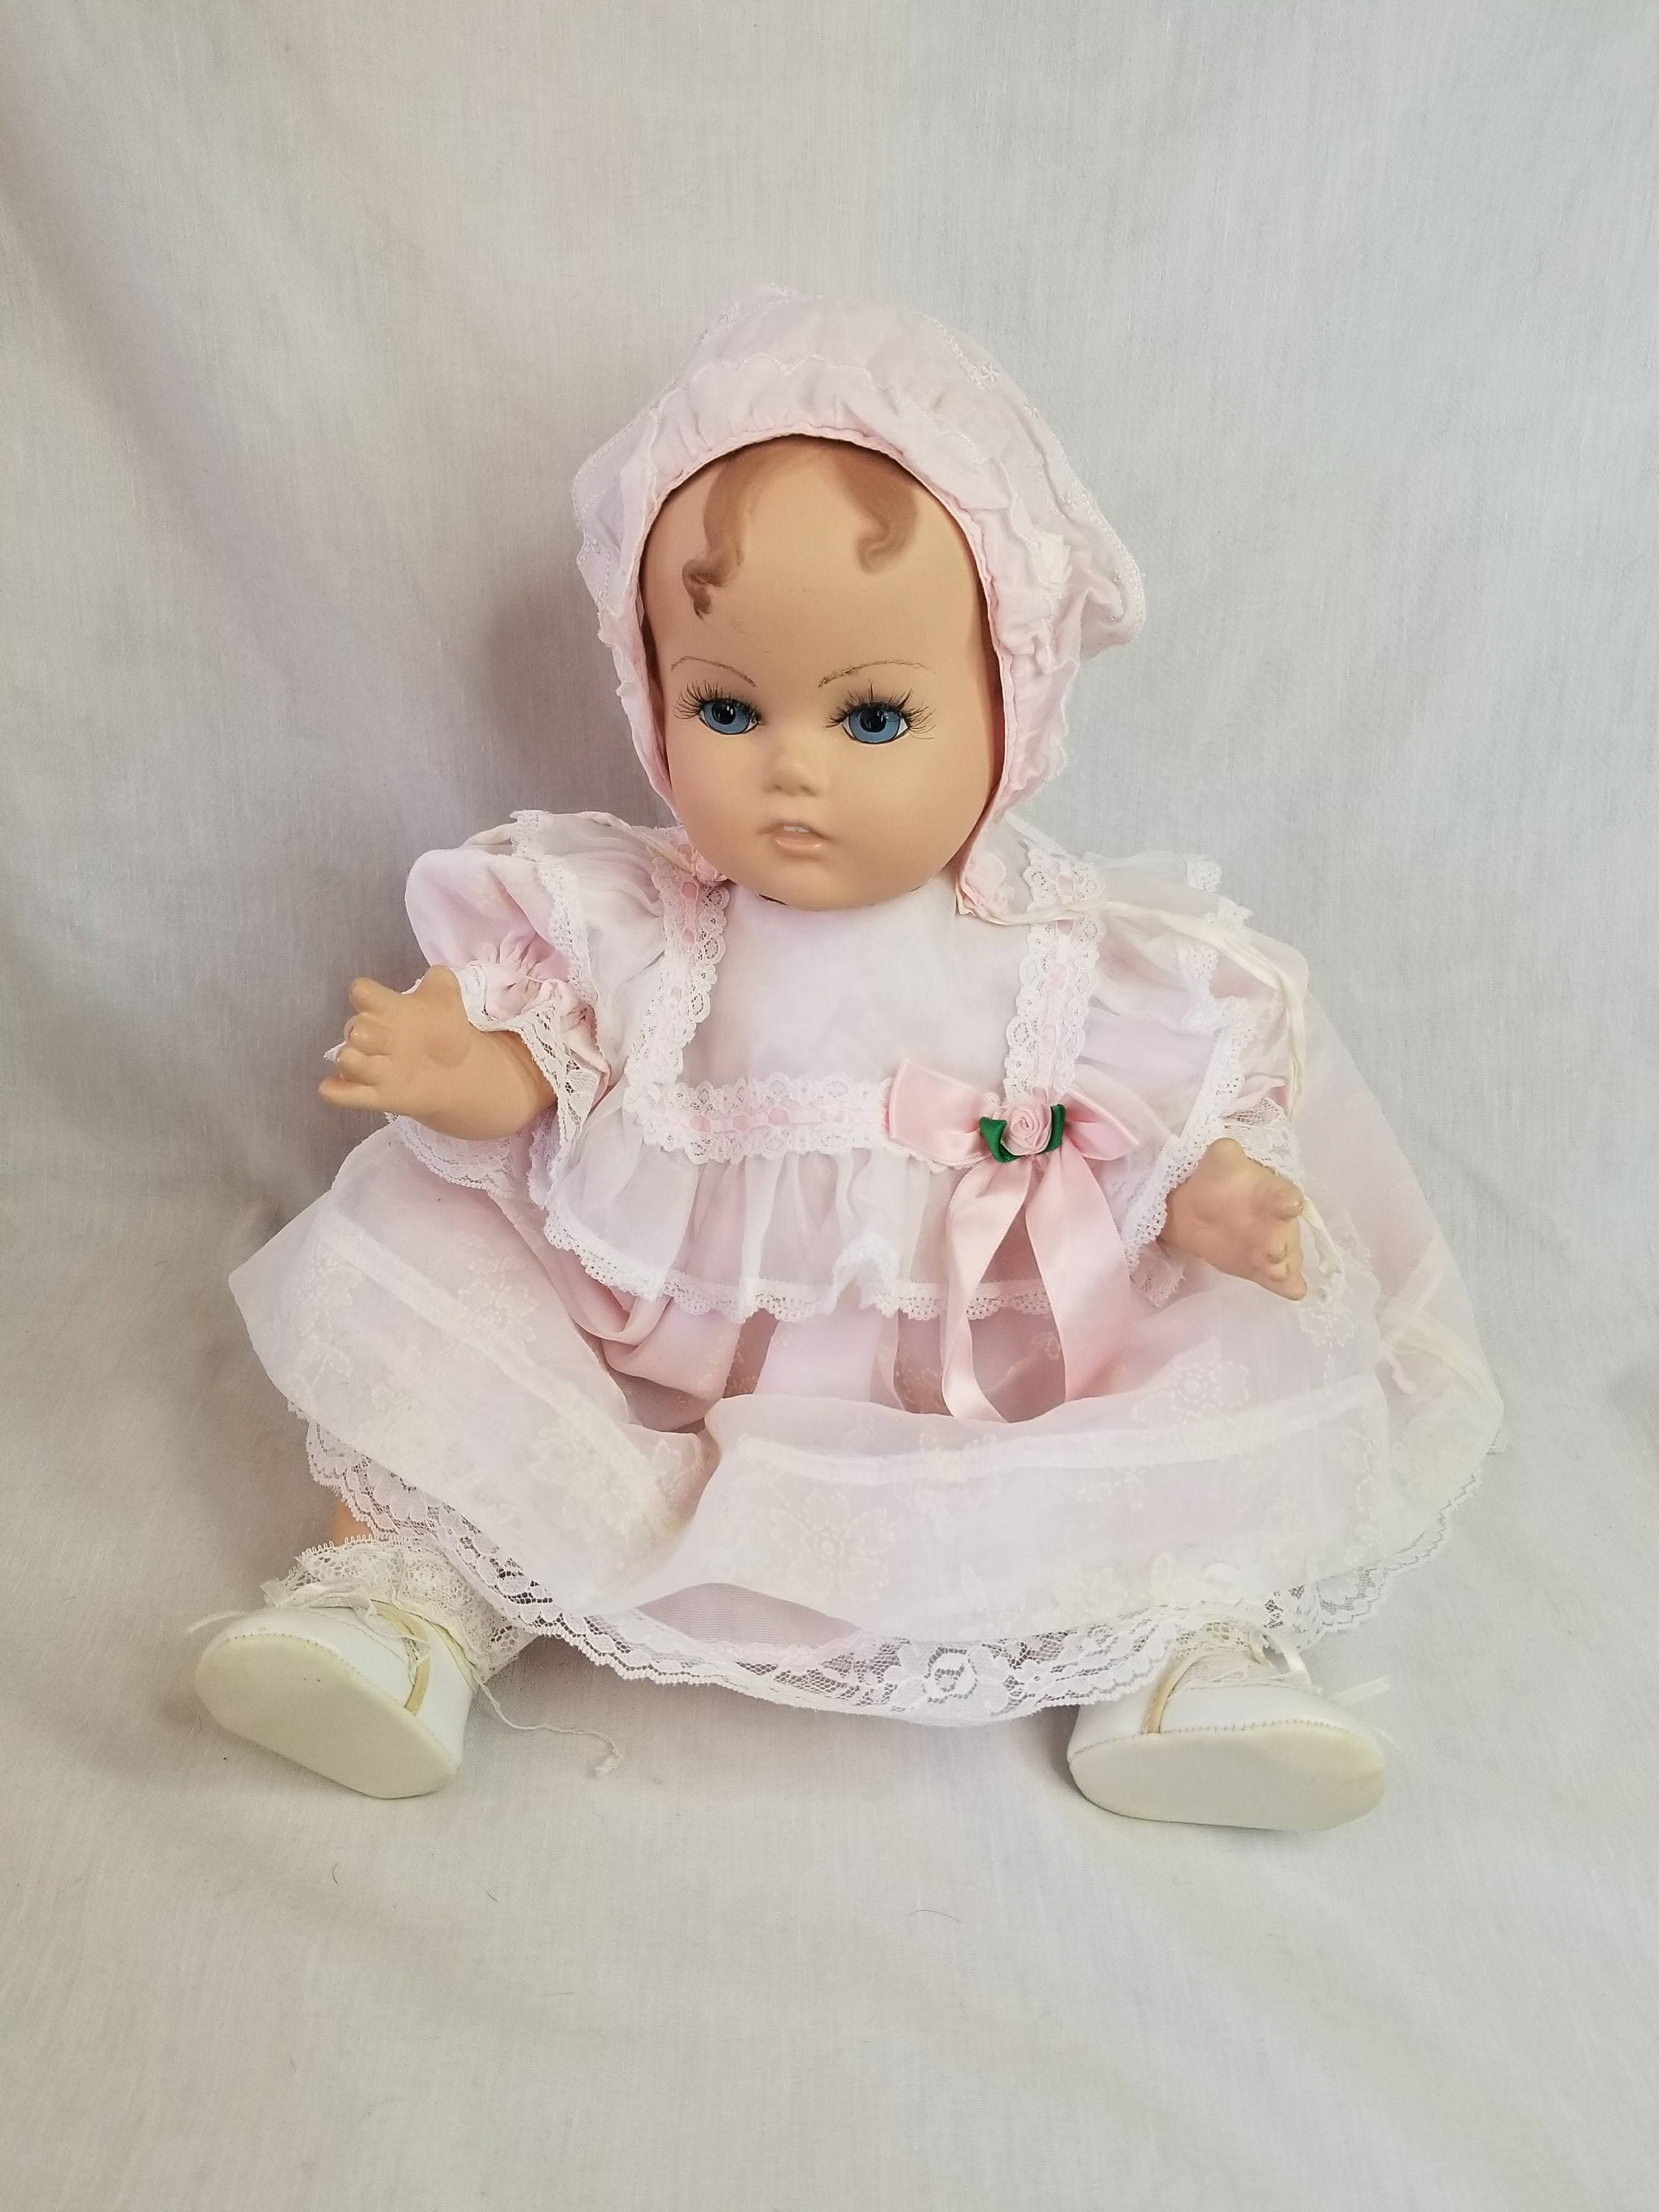 Melody Big Haunted OOAK 24 Handmade Bisque Cloth Victorian Gerber